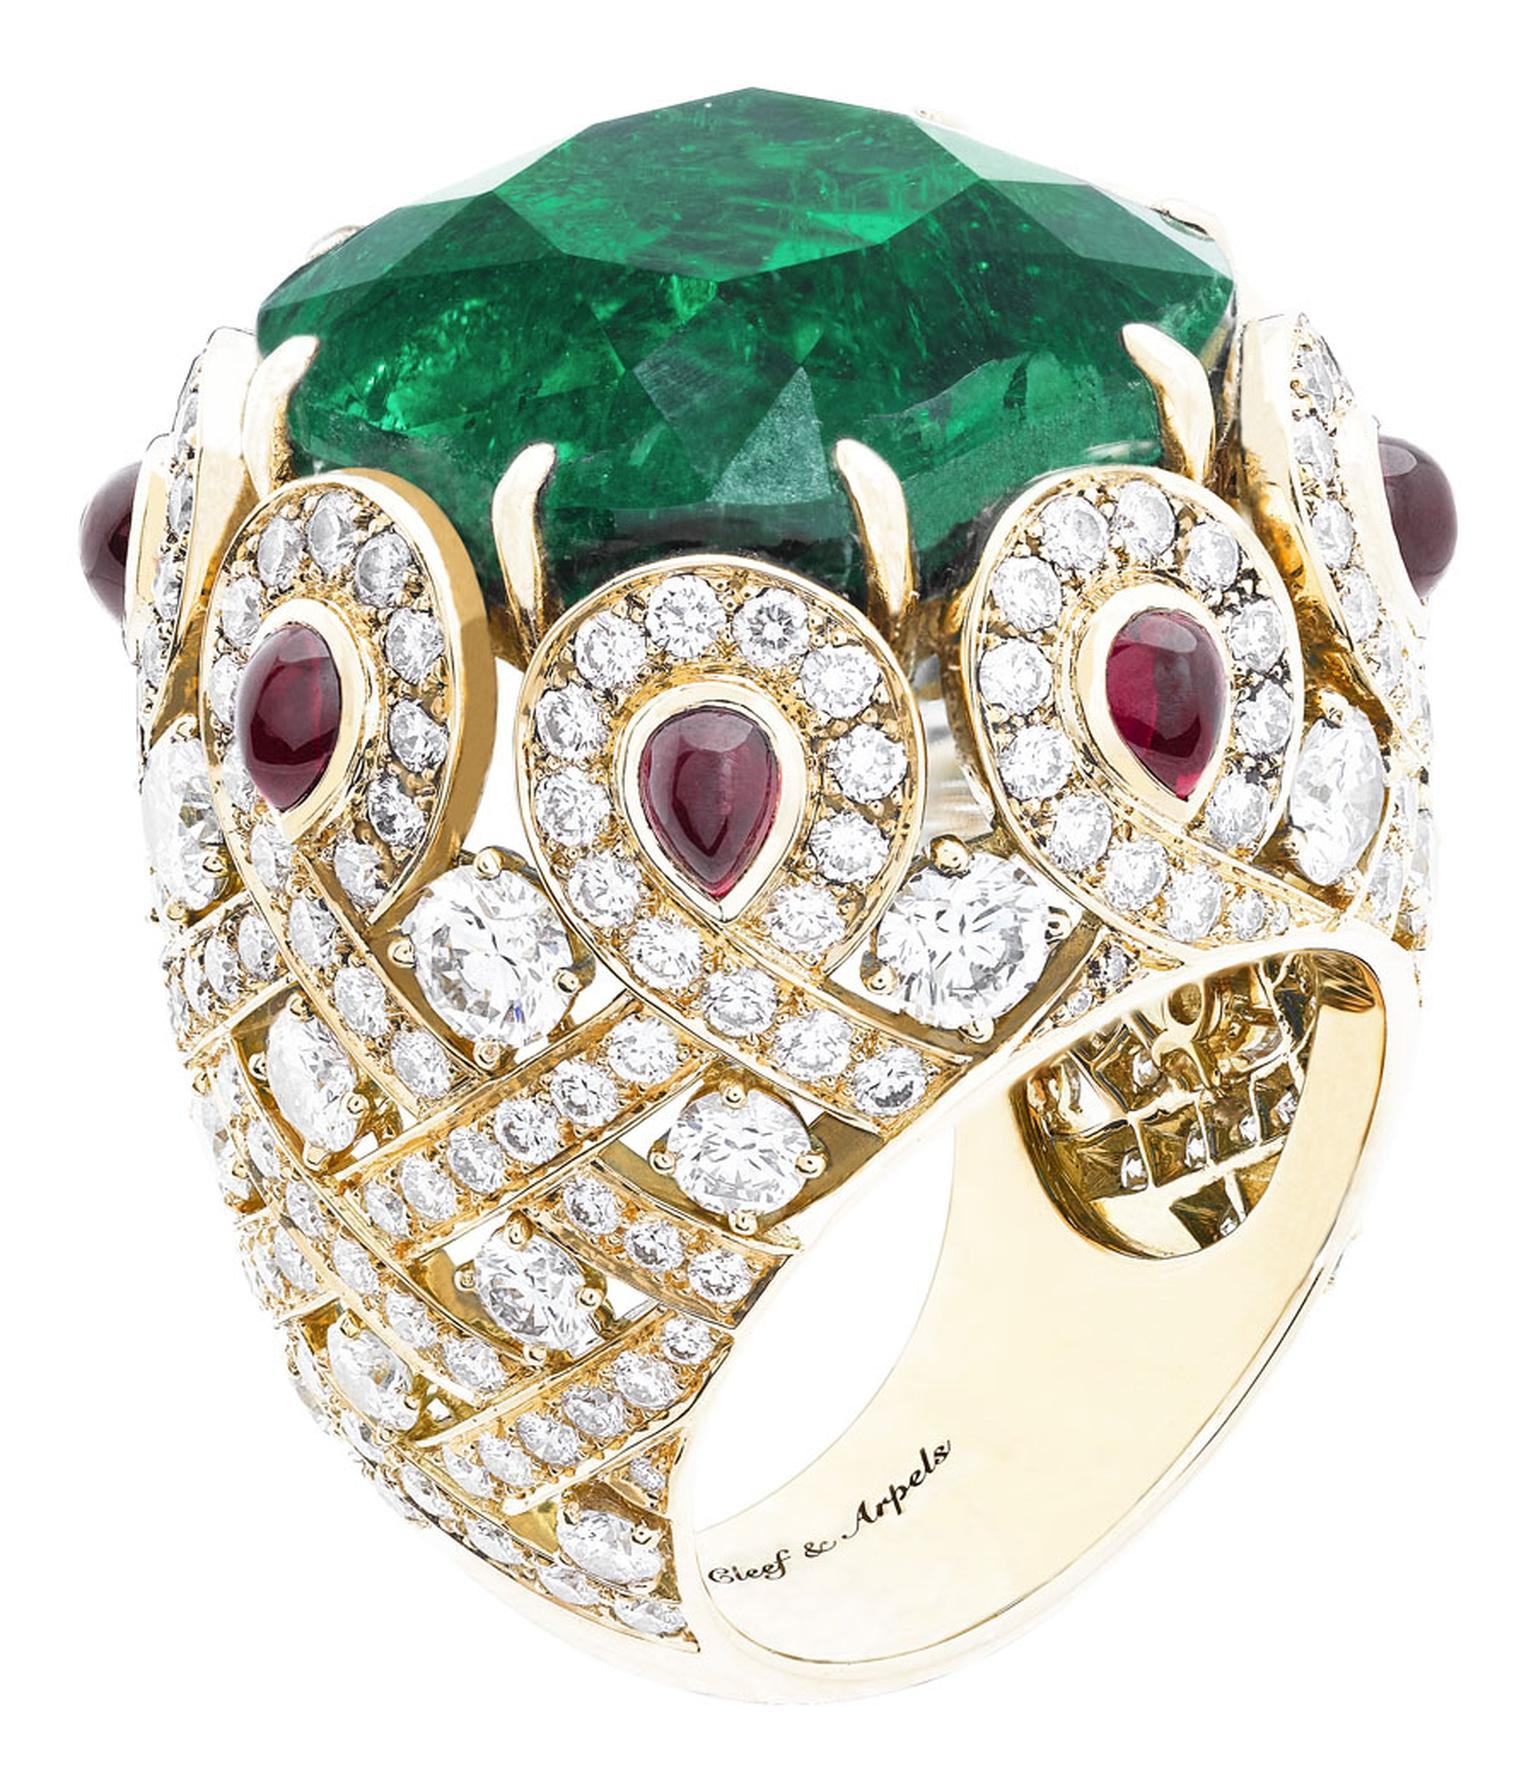 Van Cleef & Arpels Pierres de Caractère Pongal ring in yellow gold, with diamonds, cabochon-cut rubies and one cushion-cut Colombian emerald of 27.81ct.